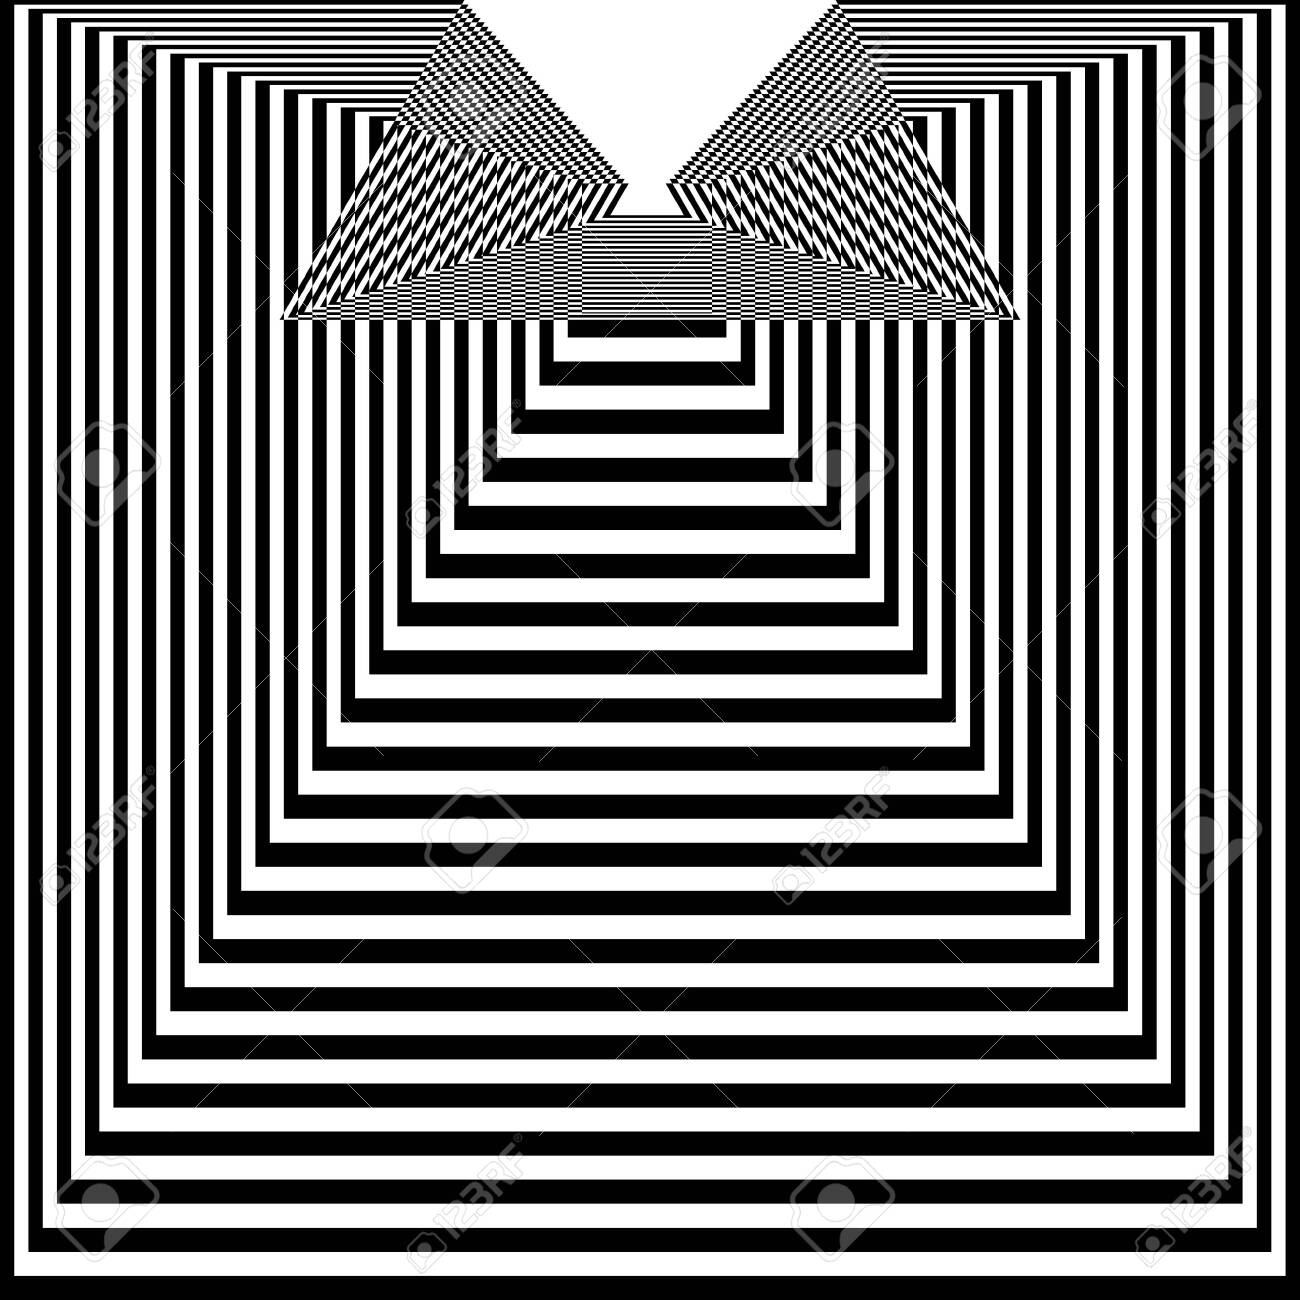 Abstract black and white striped background. Geometric pattern with visual distortion effect. Optical illusion. Op art. - 117017100